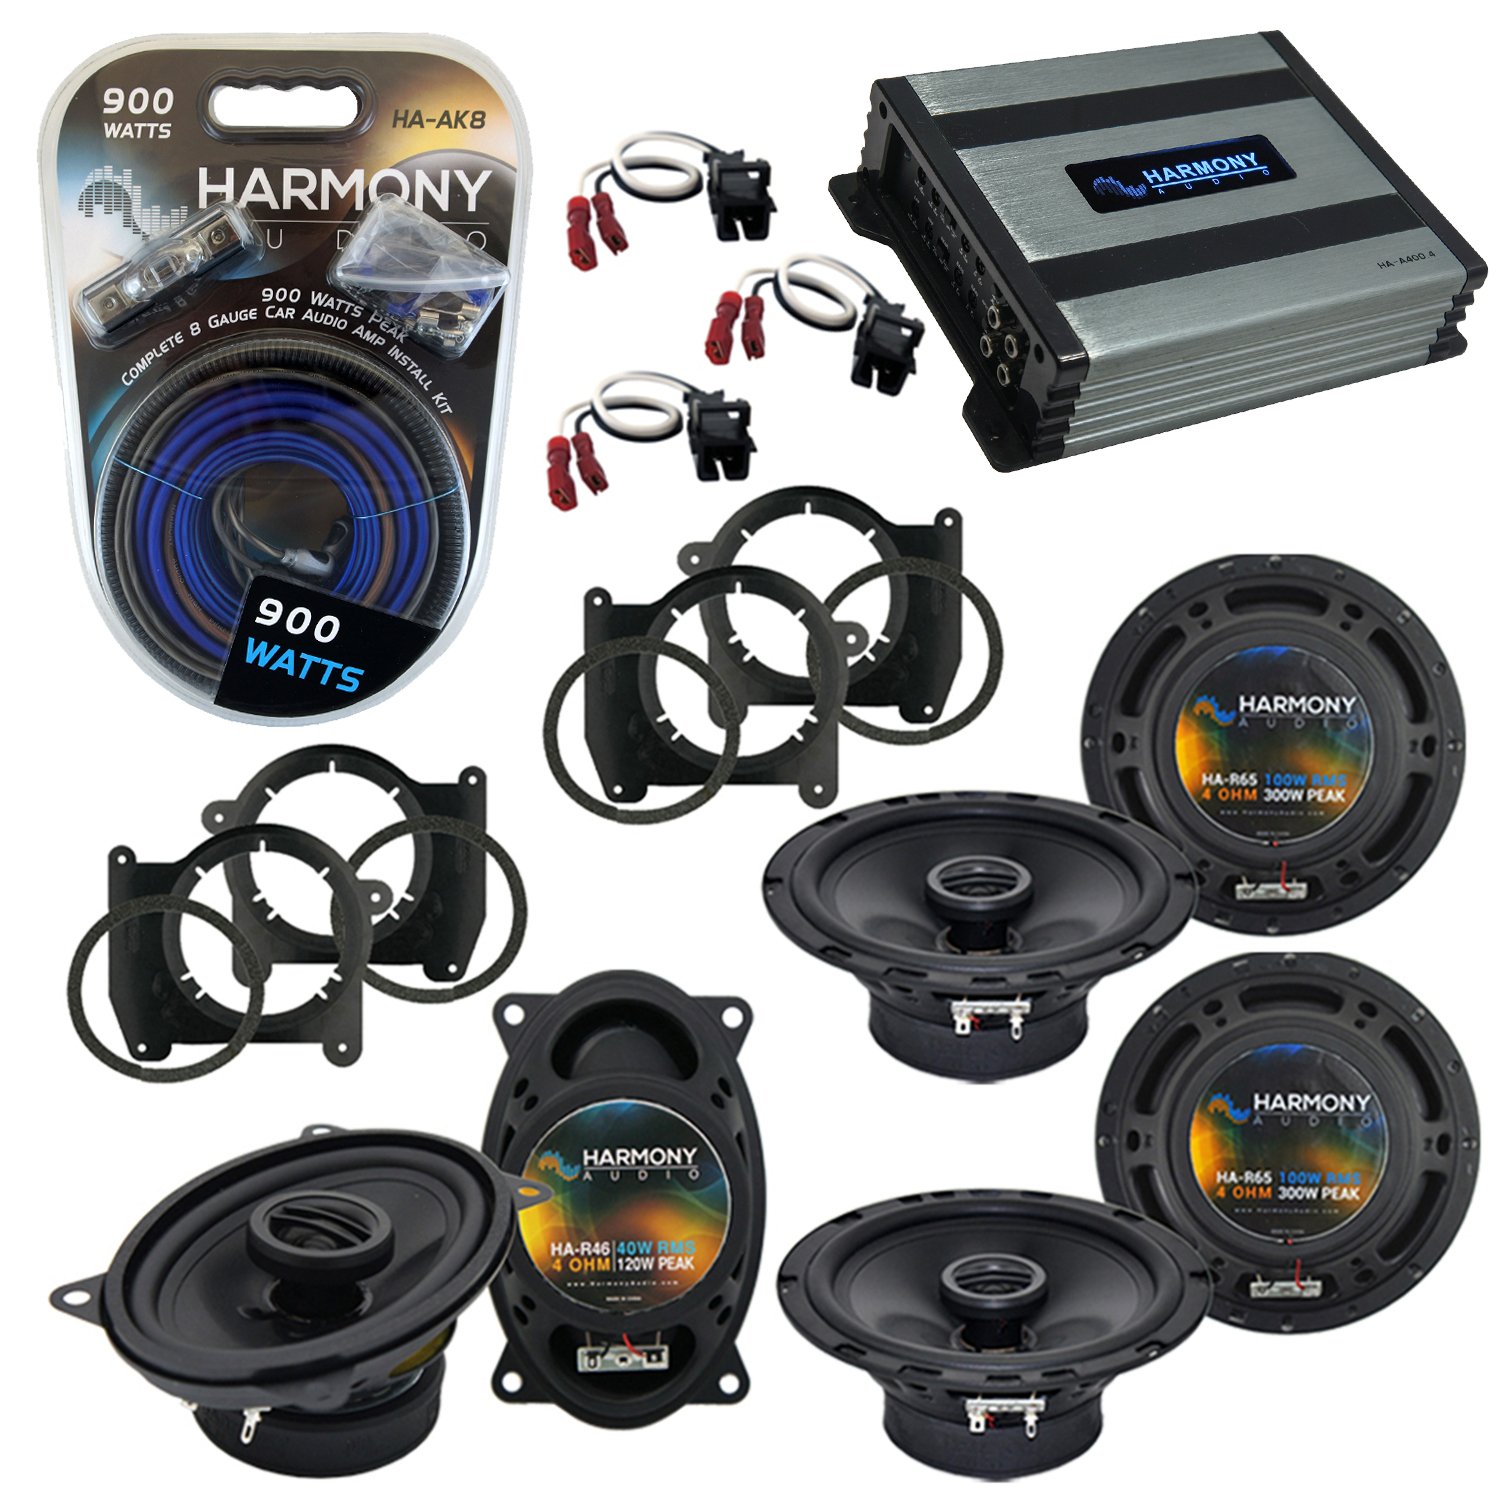 Compatible with GMC Jimmy 1995-2001 OEM Speaker Replacement Harmony (2) R65 R46 & Harmony HA-A400.4 Amp